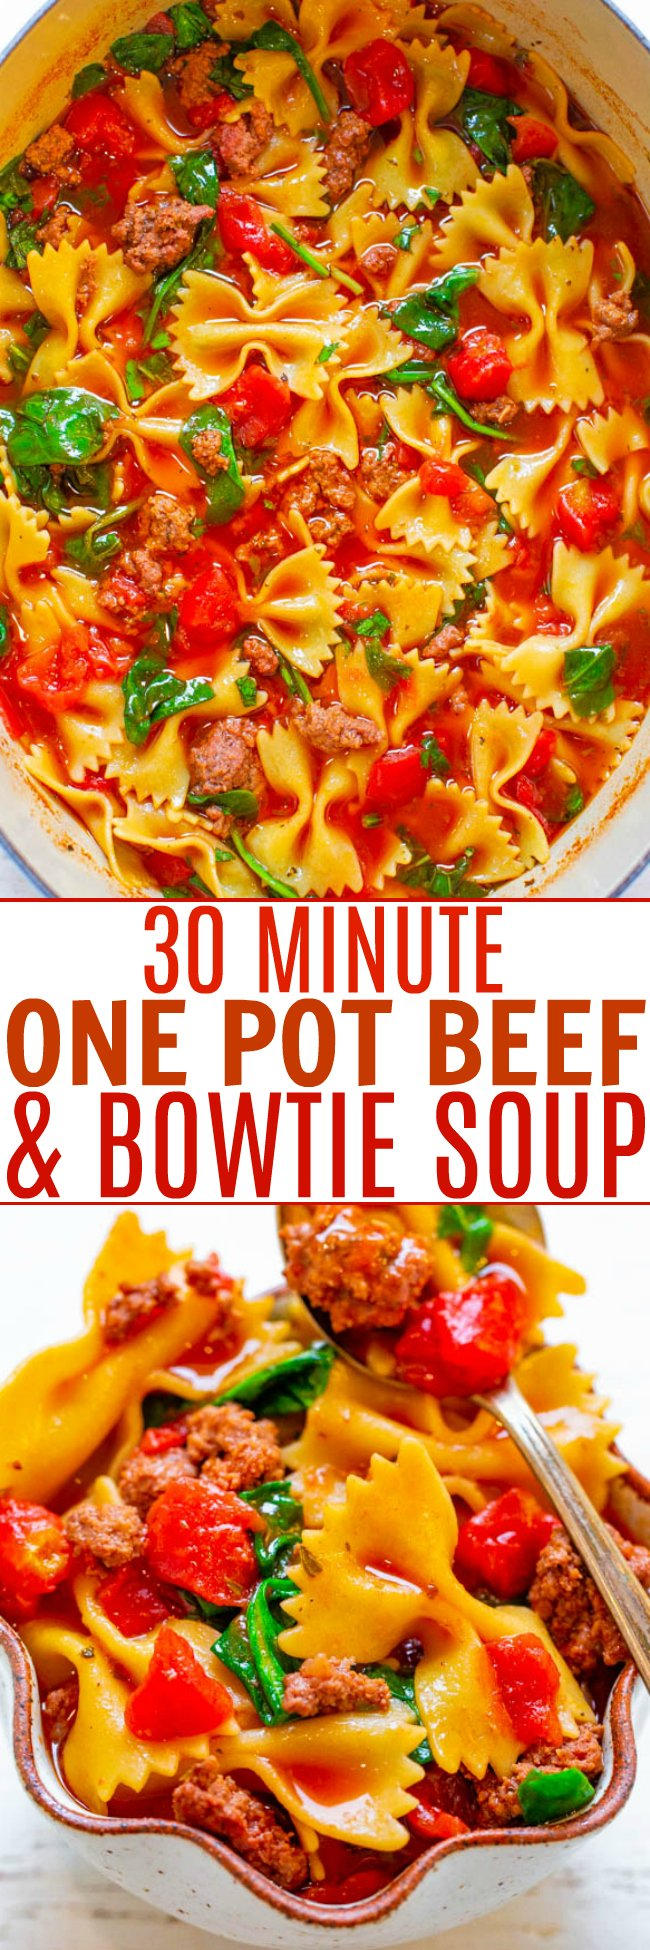 30-Minute One-Pot Beef and Bowtie Soup - EASY, hearty, comfort food that's full of flavor!! A FAST and tasty soup the whole family will LOVE! It will keep your warm on chilly winter nights!!